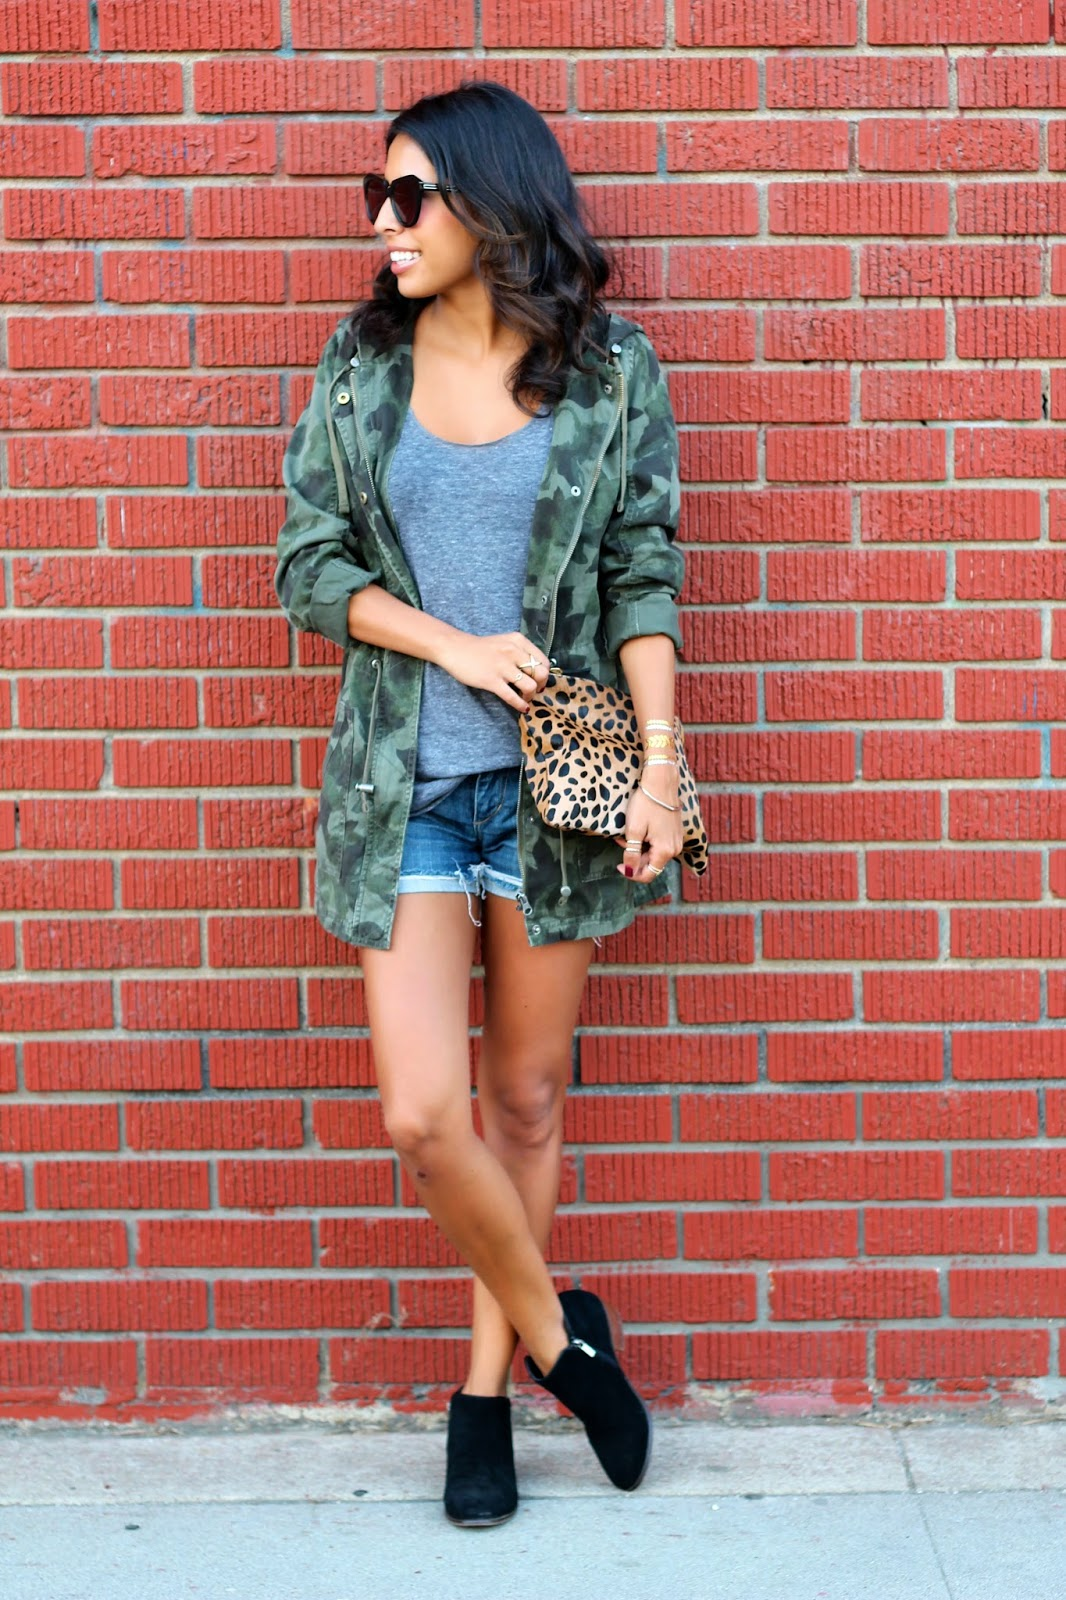 target, dsw, fall style, what is fashion, leopard clutch